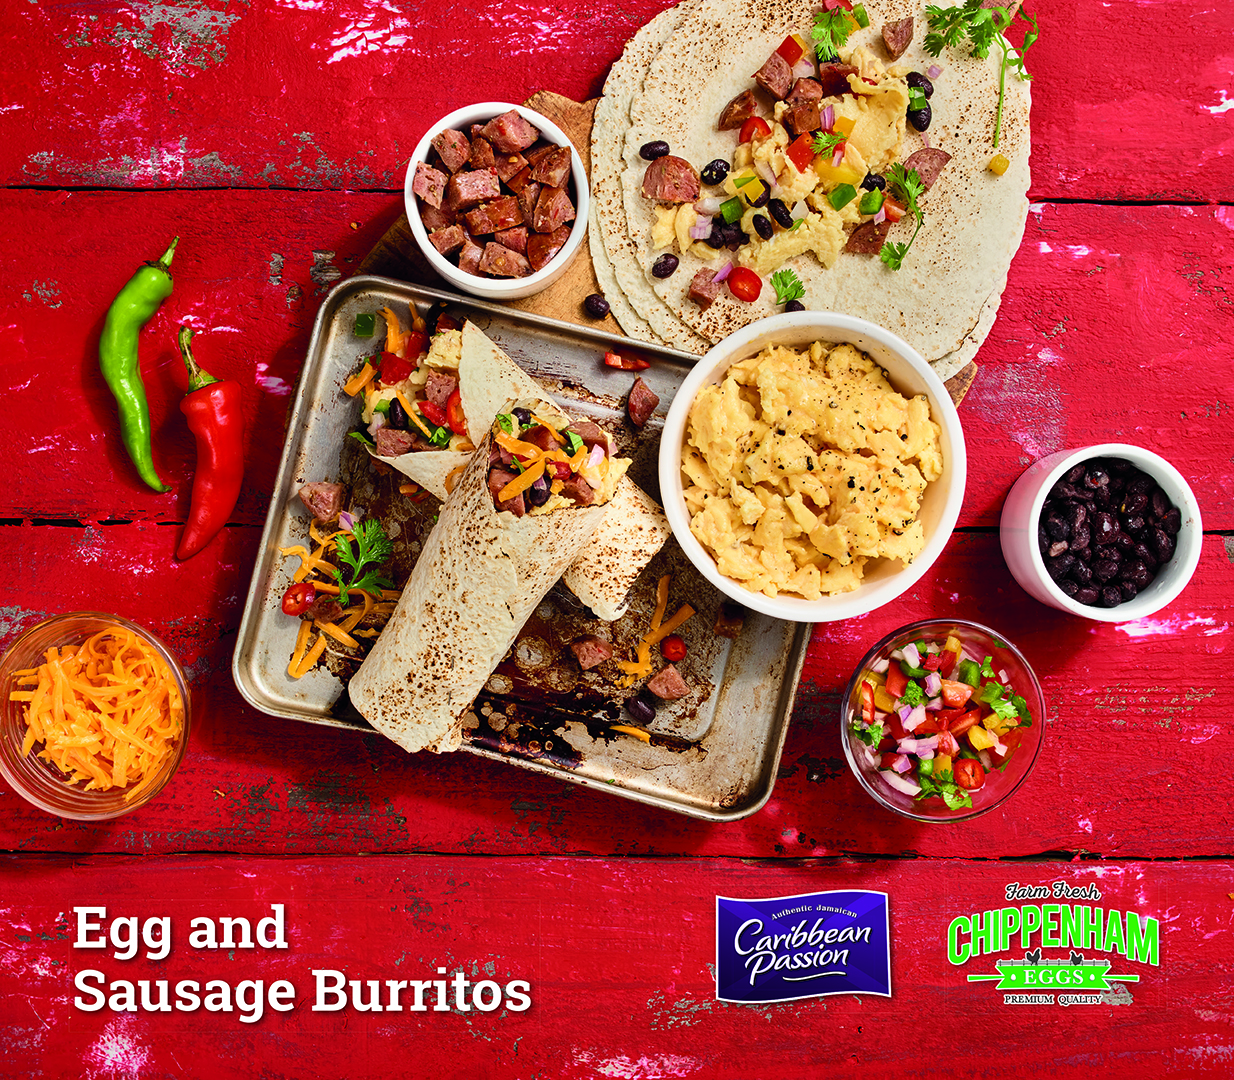 Egg and Sausage Burritos